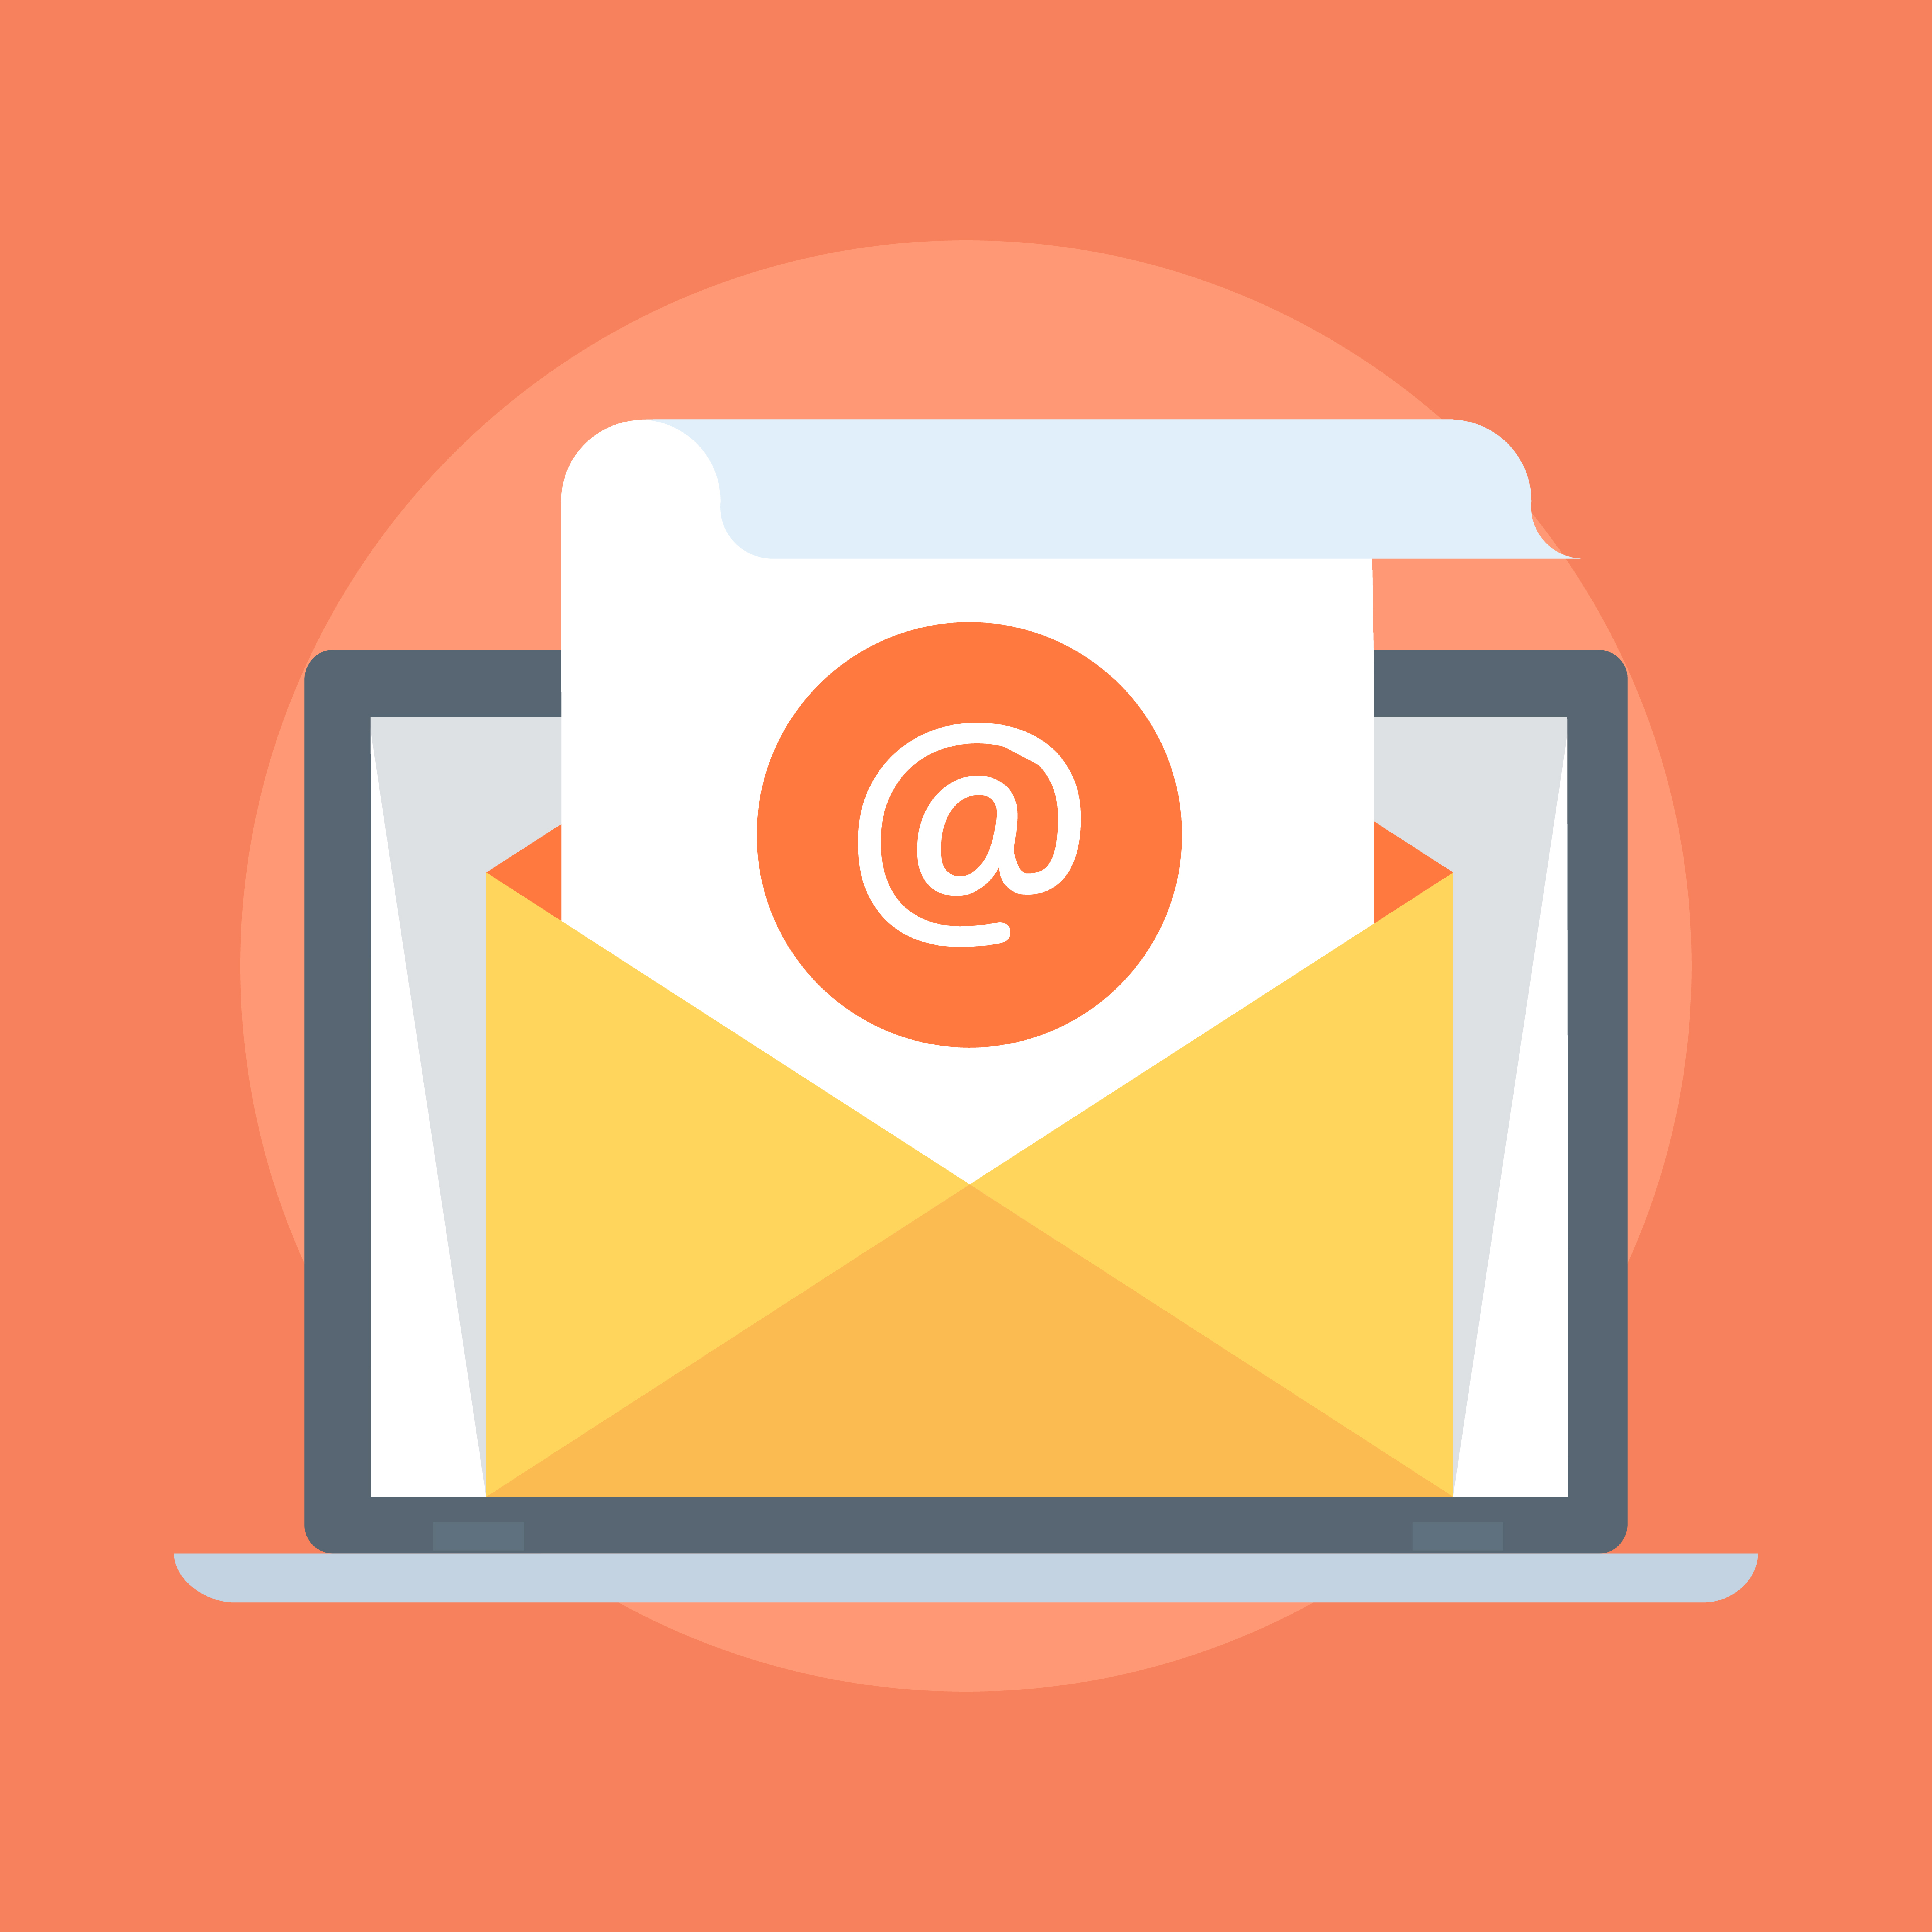 Email is not dead, Email Marketing